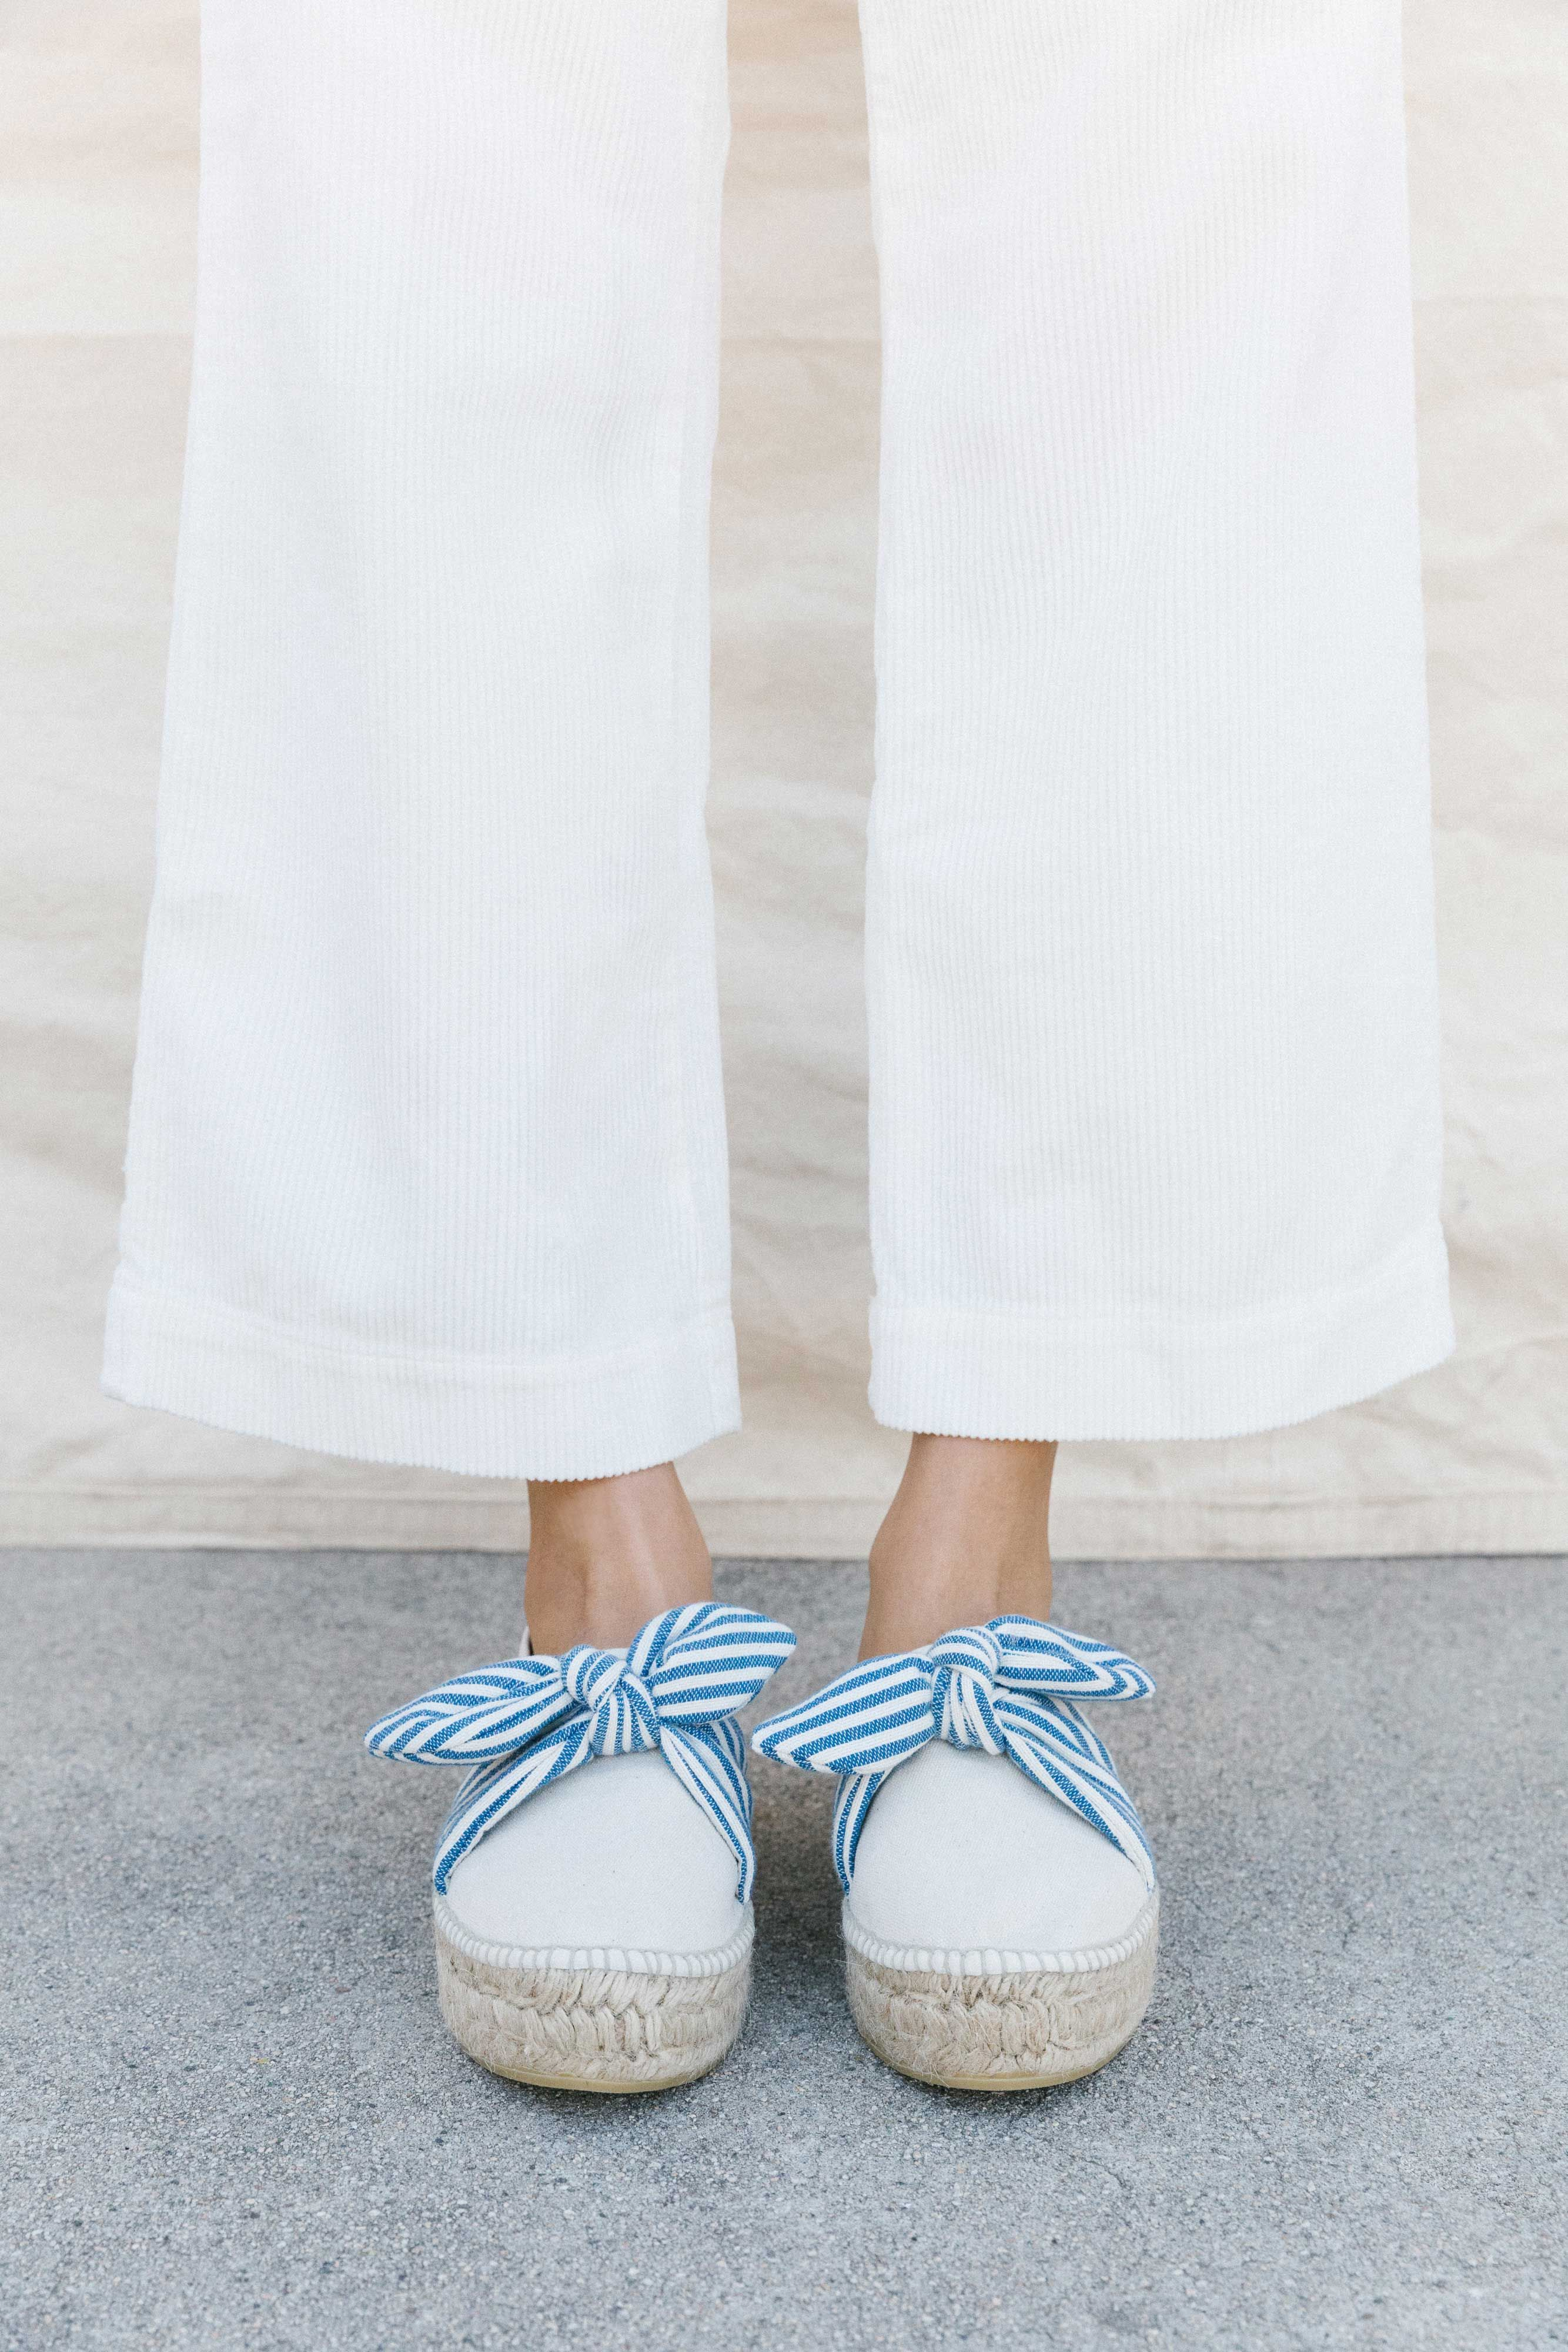 4d98f5848222 Rowan Slip on Platform Espadrille with Fabric Tie in Canvas with Blue Cream  Striped Fabric Bow